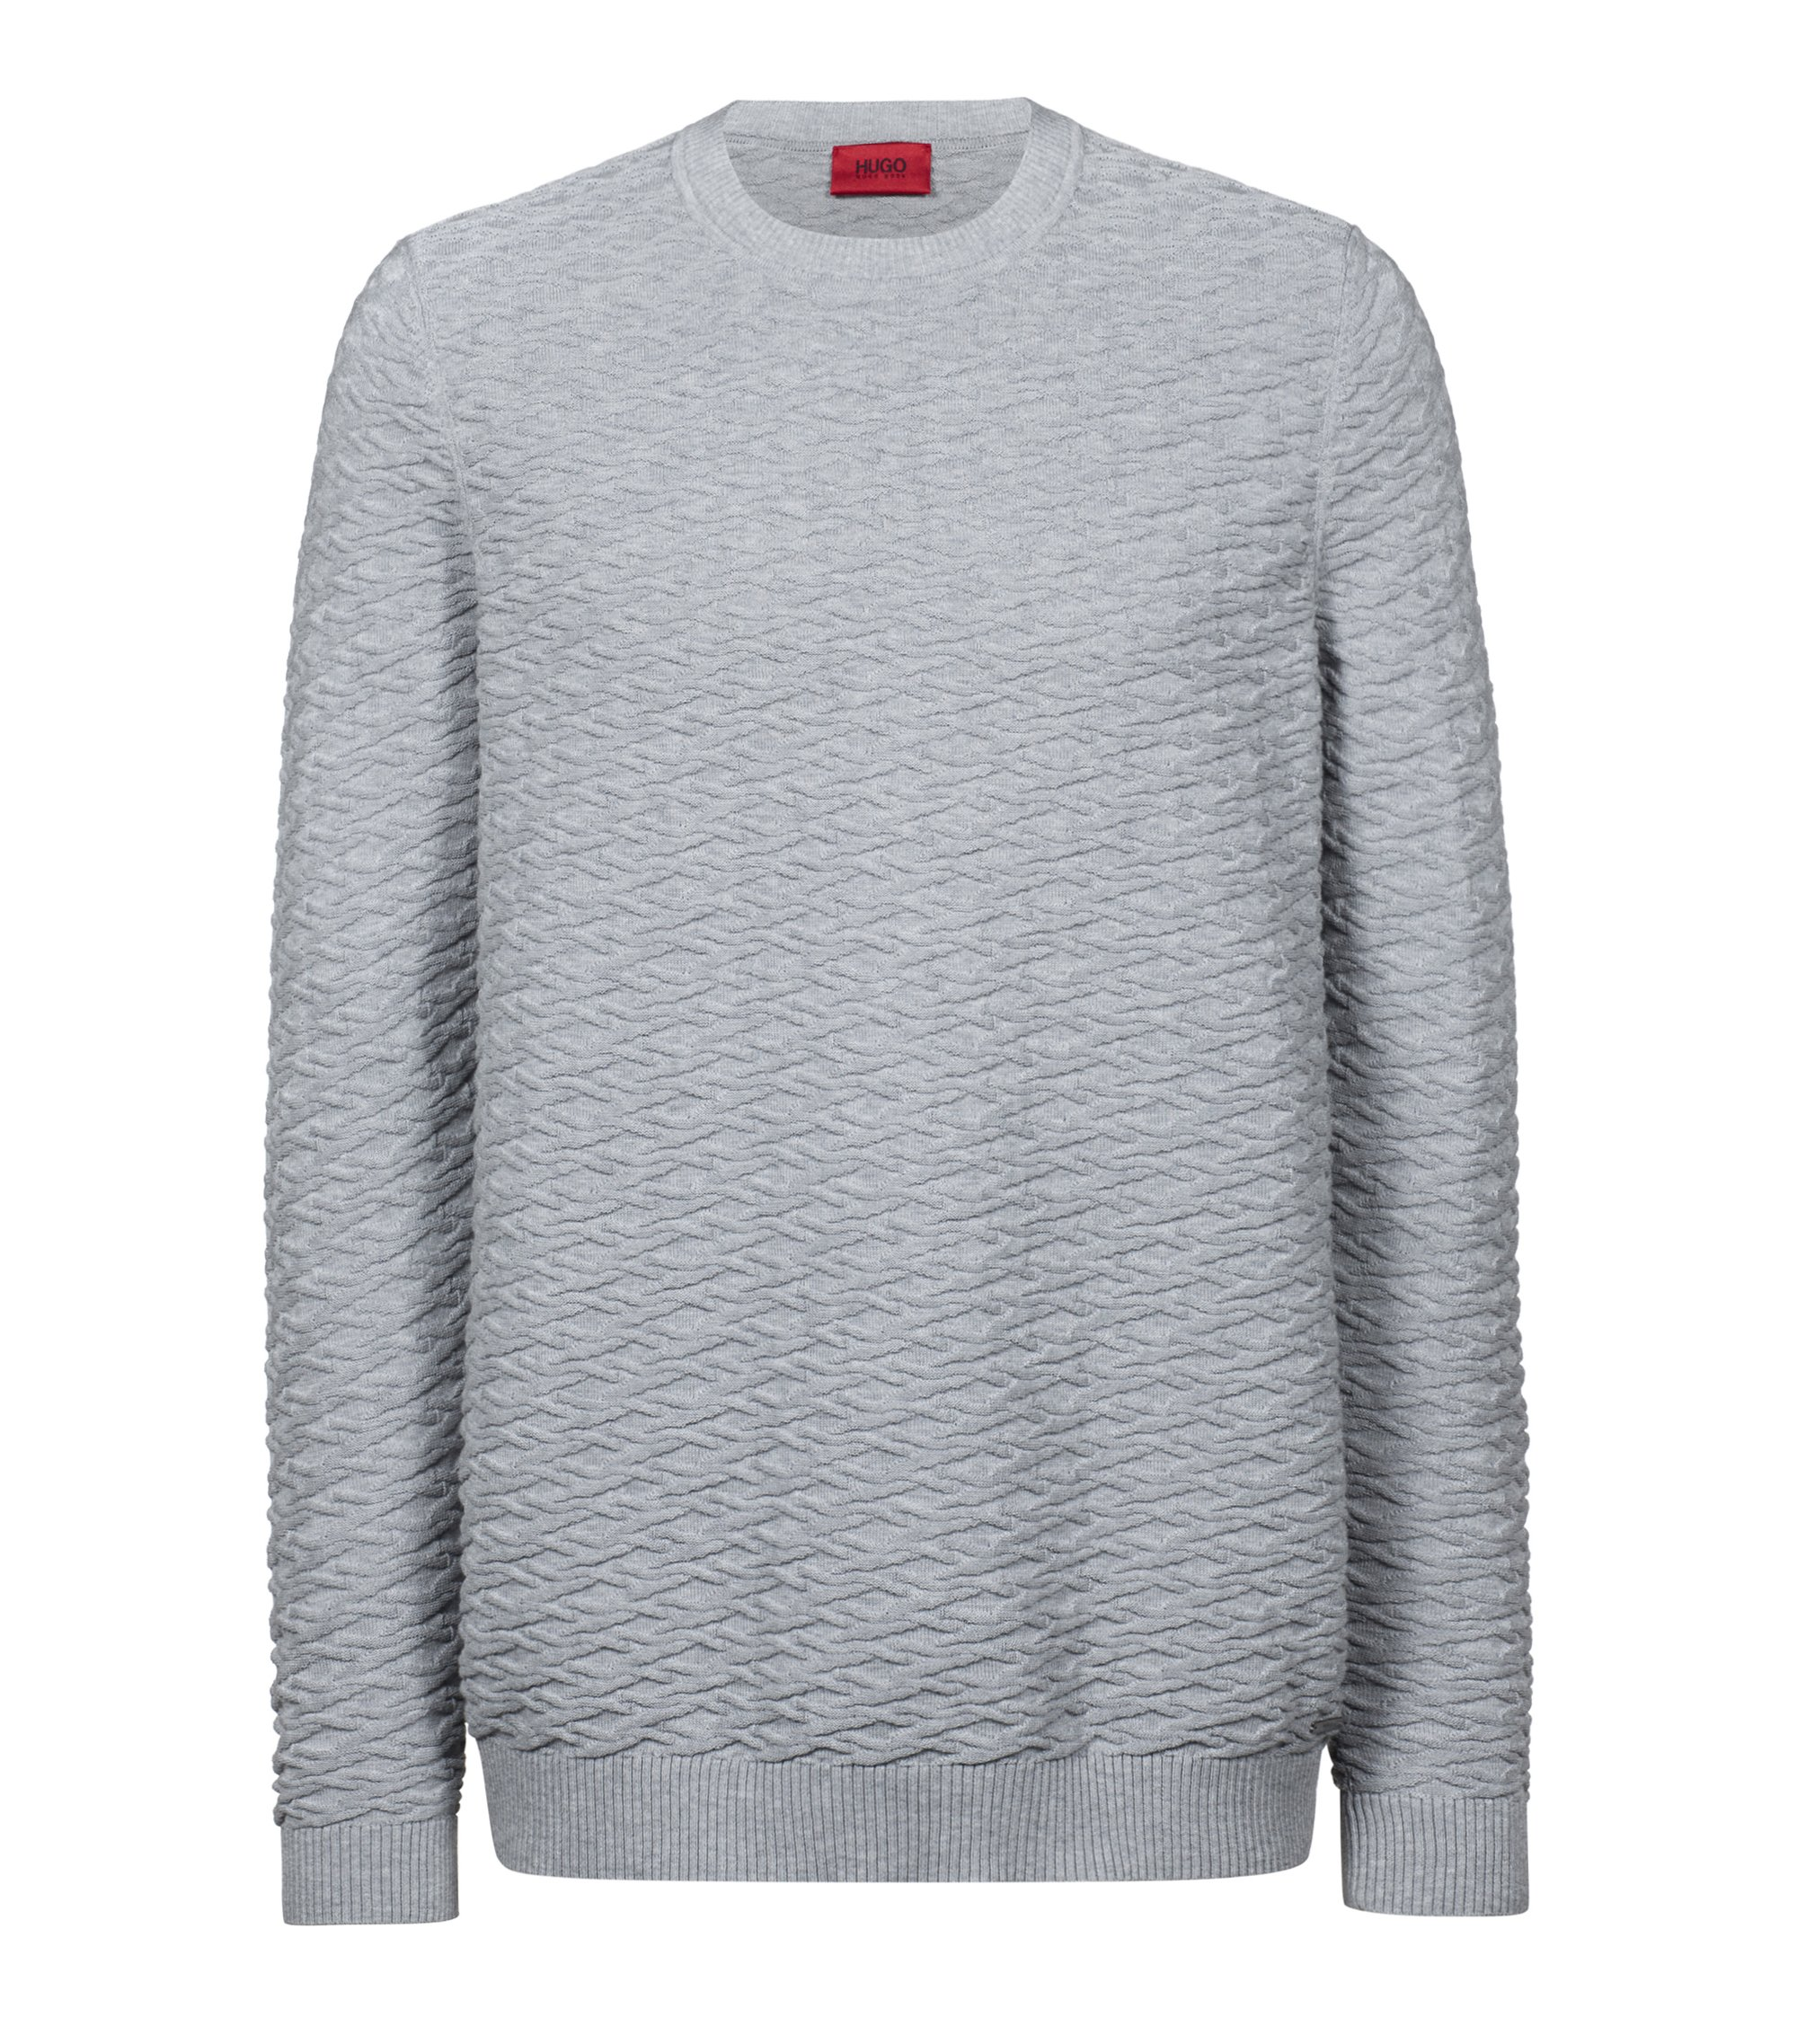 Knitted sweater in cotton jacquard, Grey